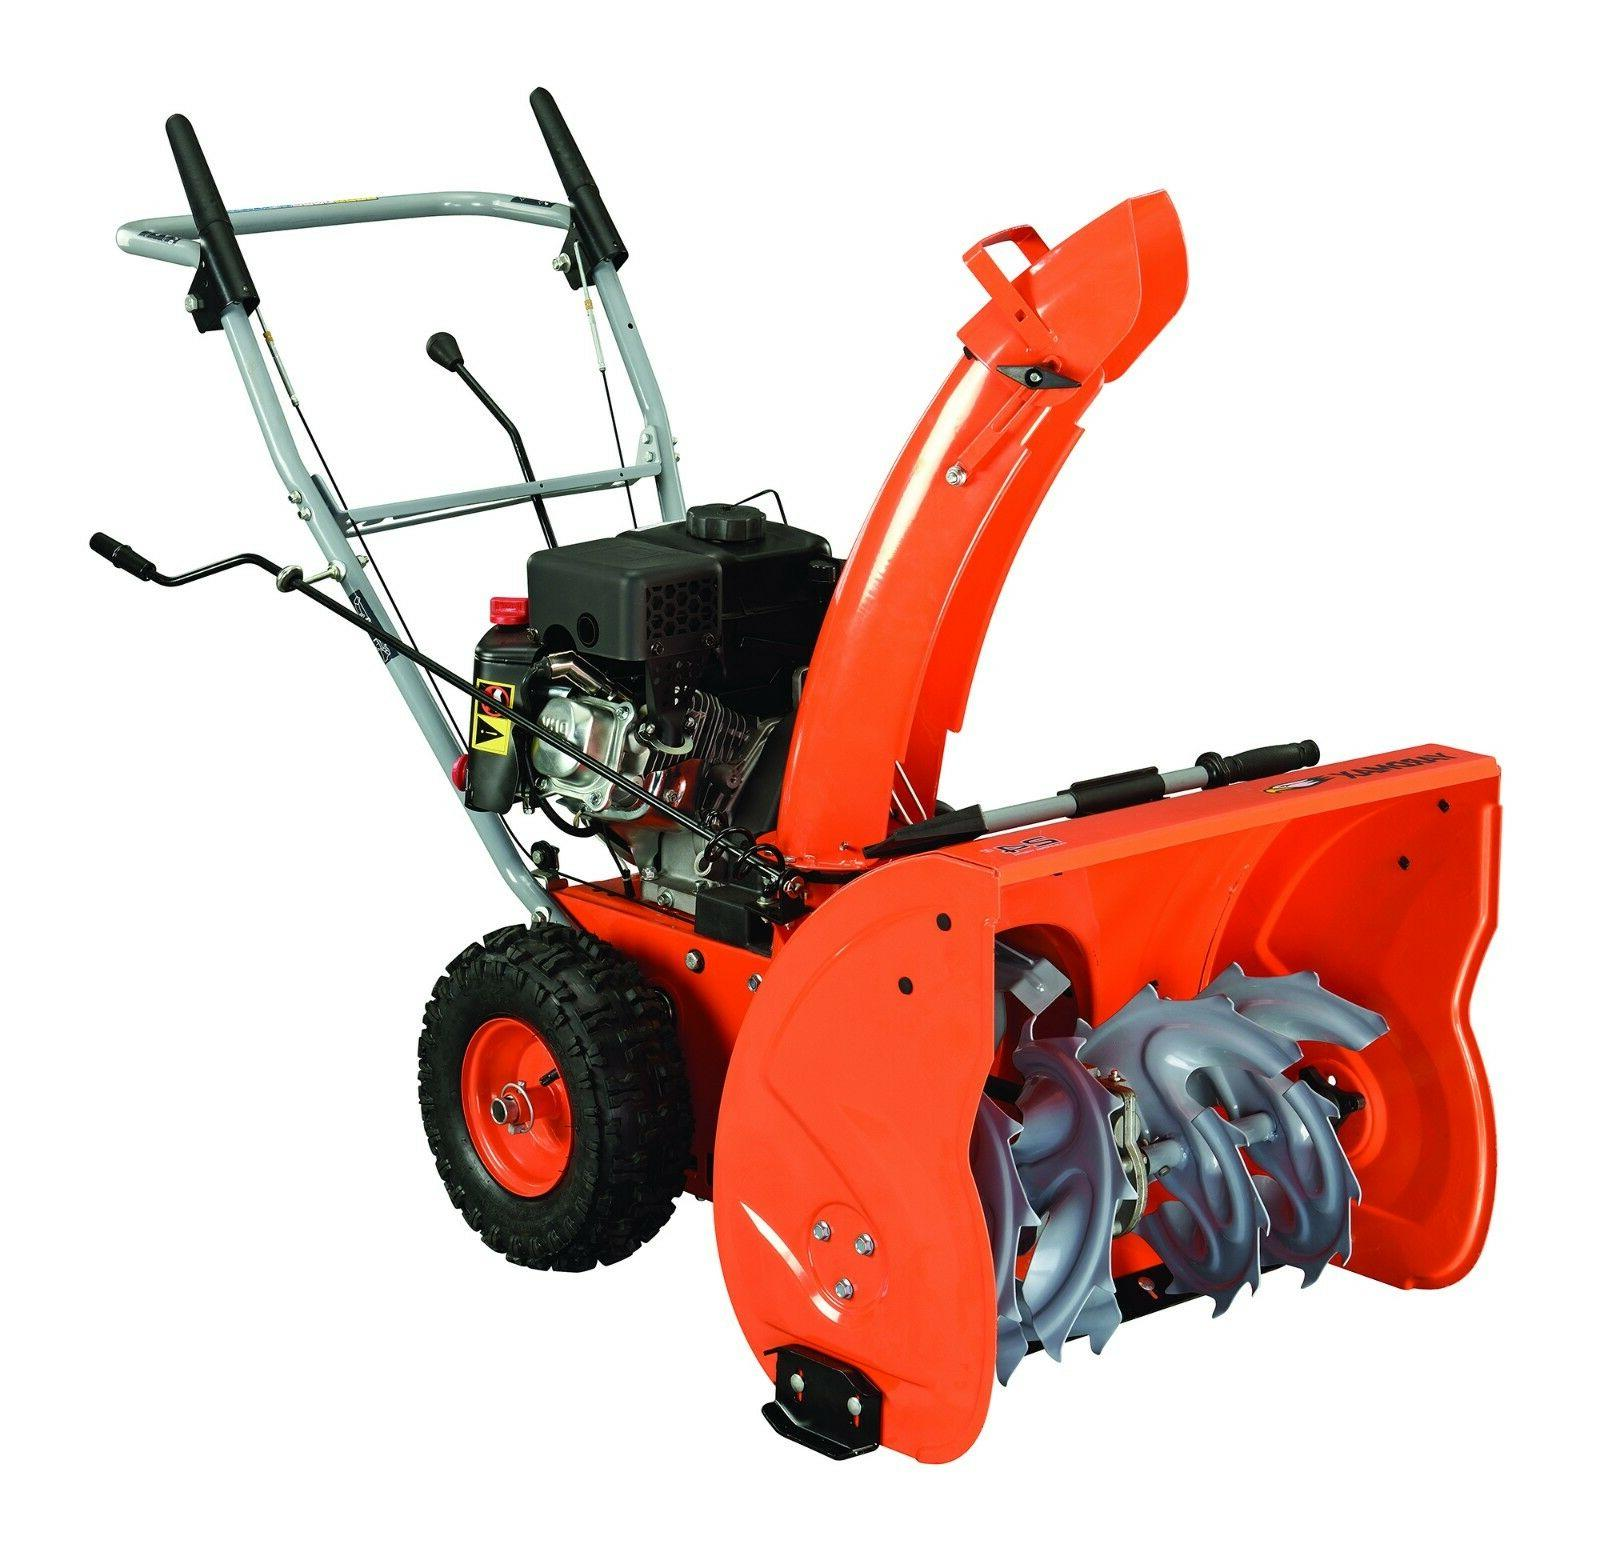 2 stage snow blower 24 self propelled